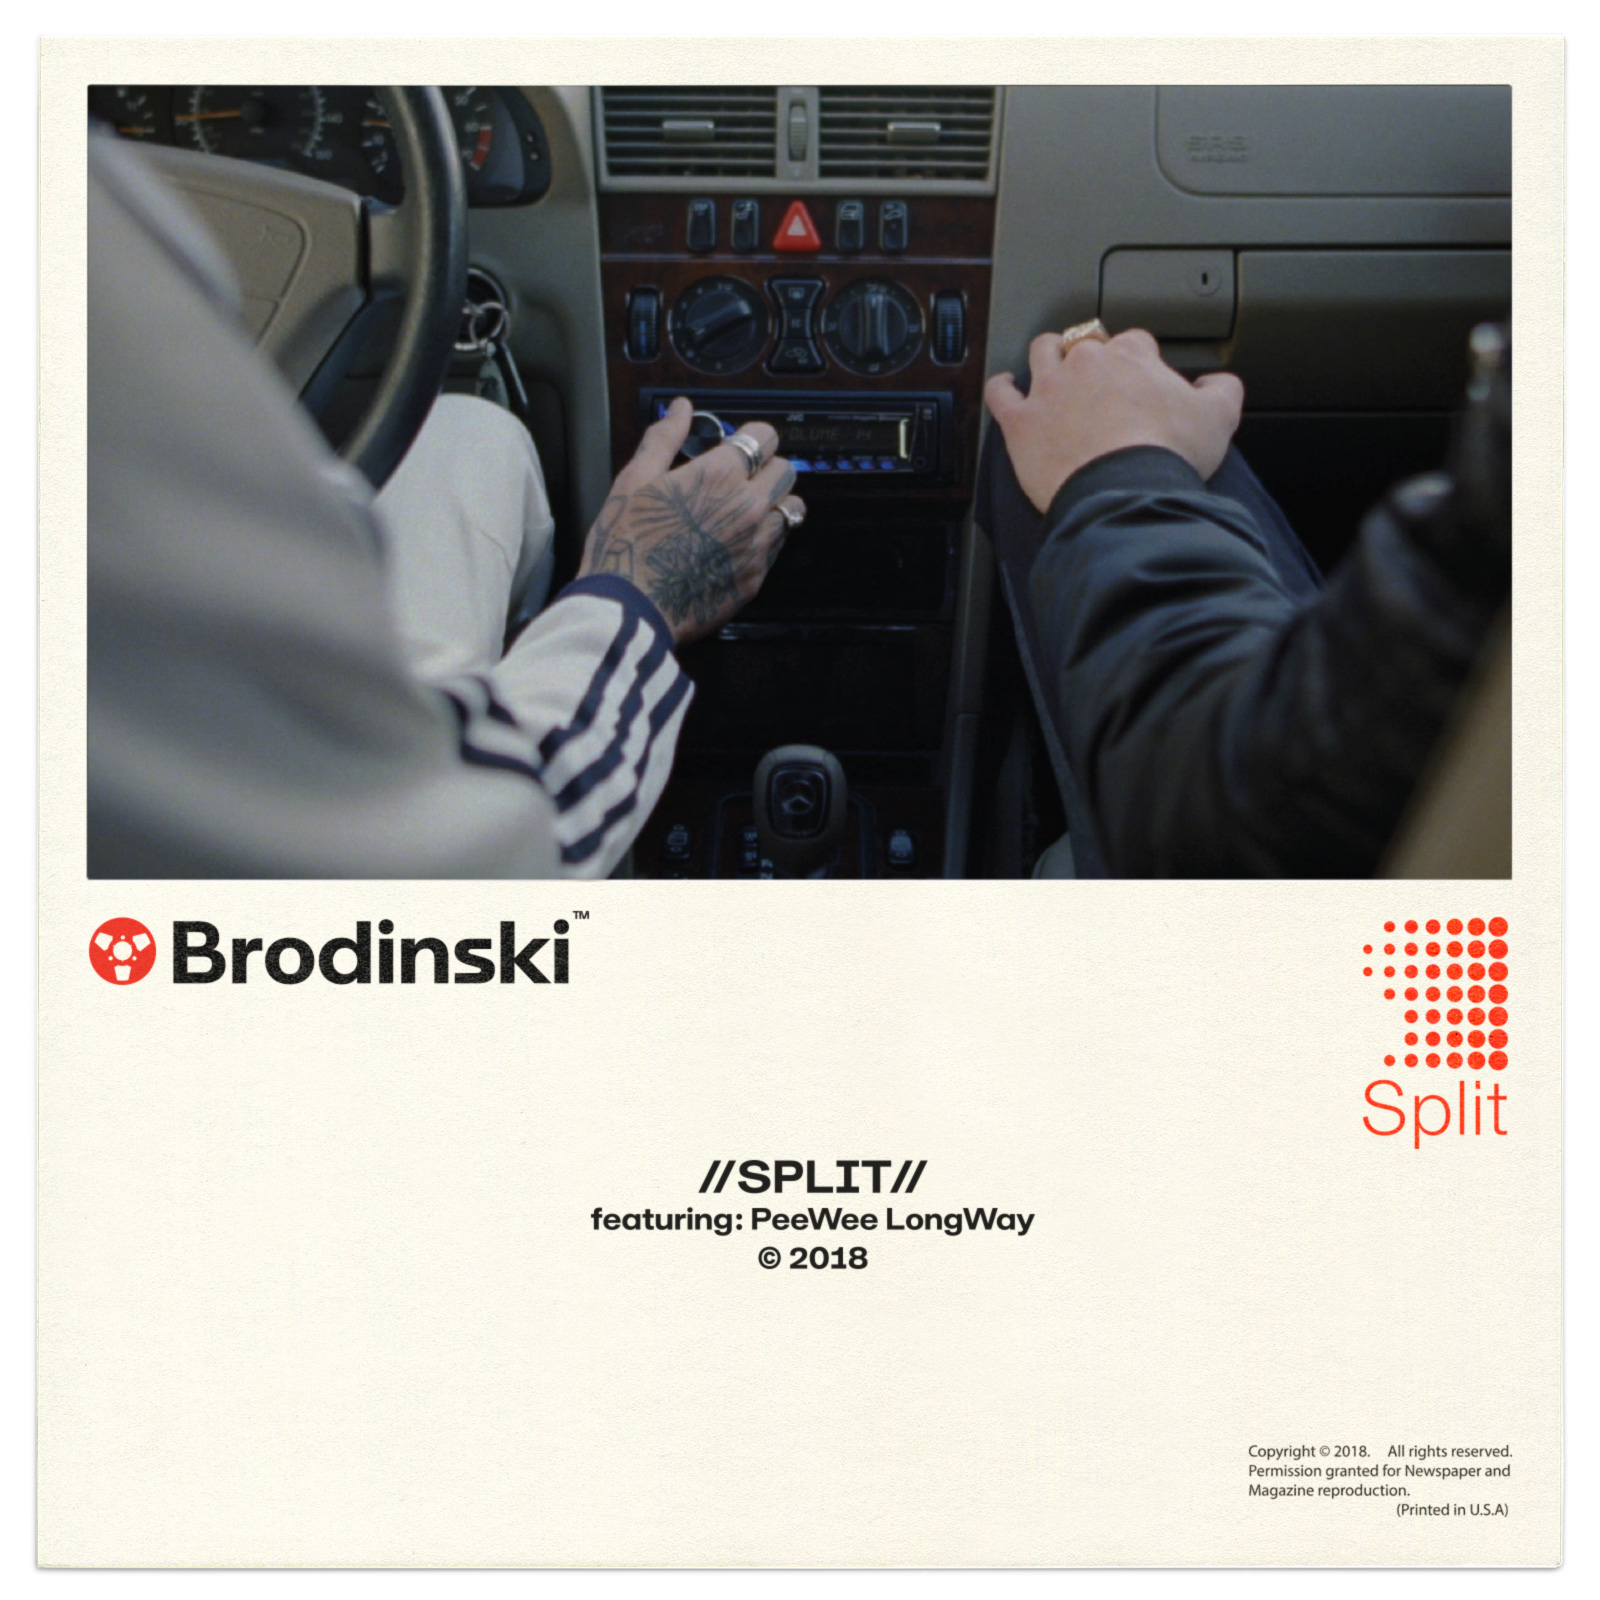 Split, the new video by French hip hop artist Brodinski | Collater.al